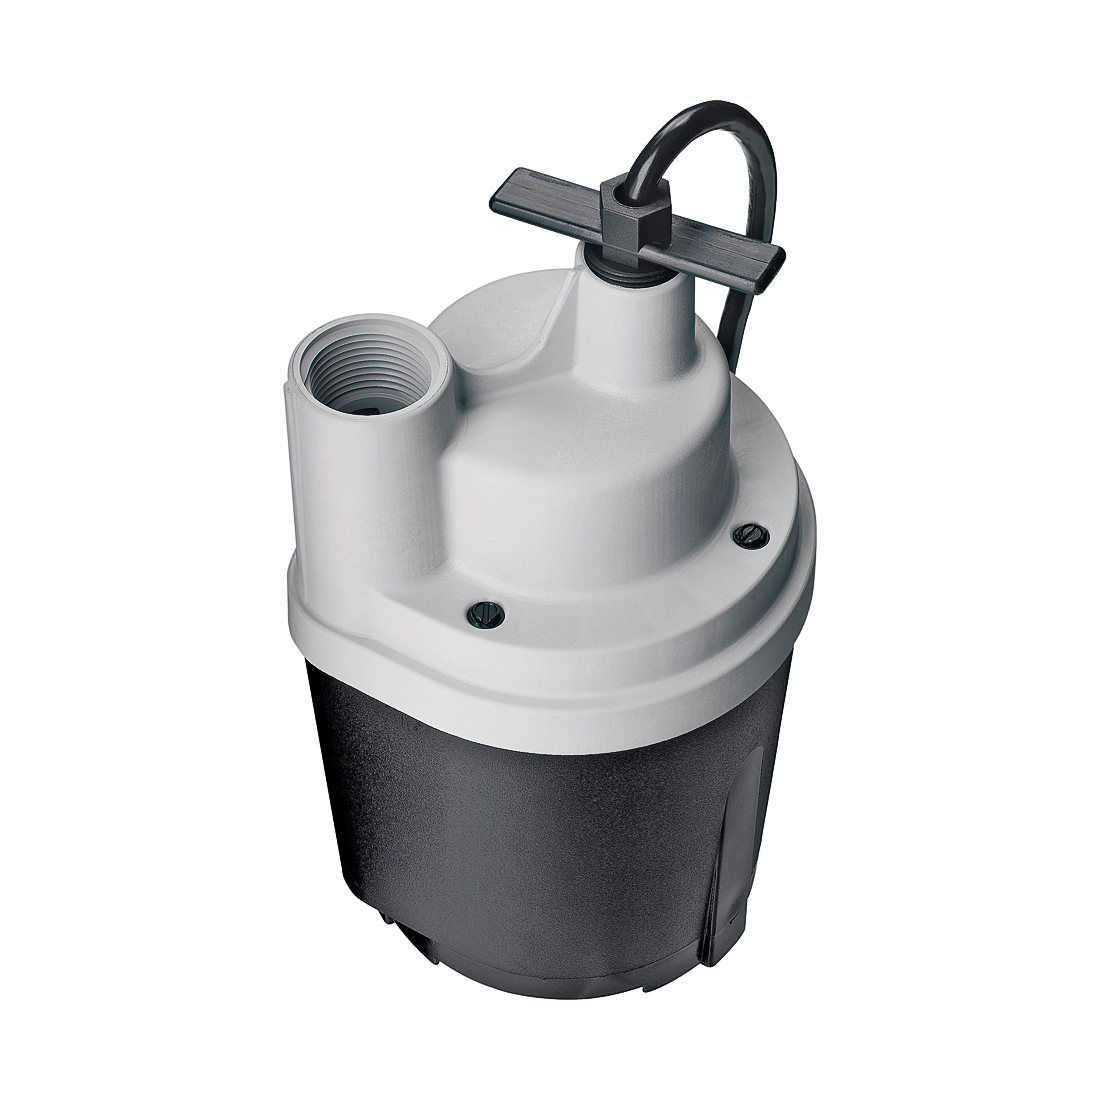 Picture of Sta-Rite Flotec IntelliPump FP0S1775A Utility Pump, 115 V, 0.25 hp, 1 in Outlet, 1790 gph, Thermoplastic